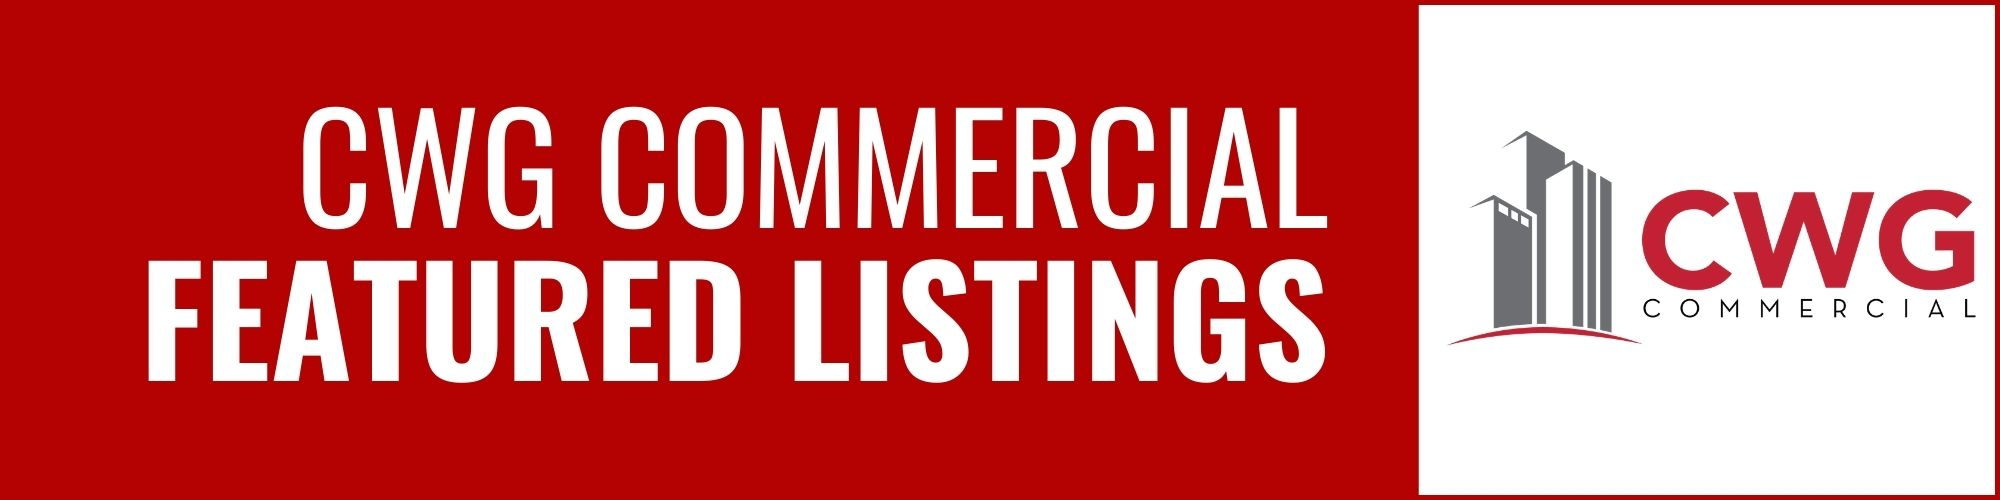 CWG Commercial Featured Listings